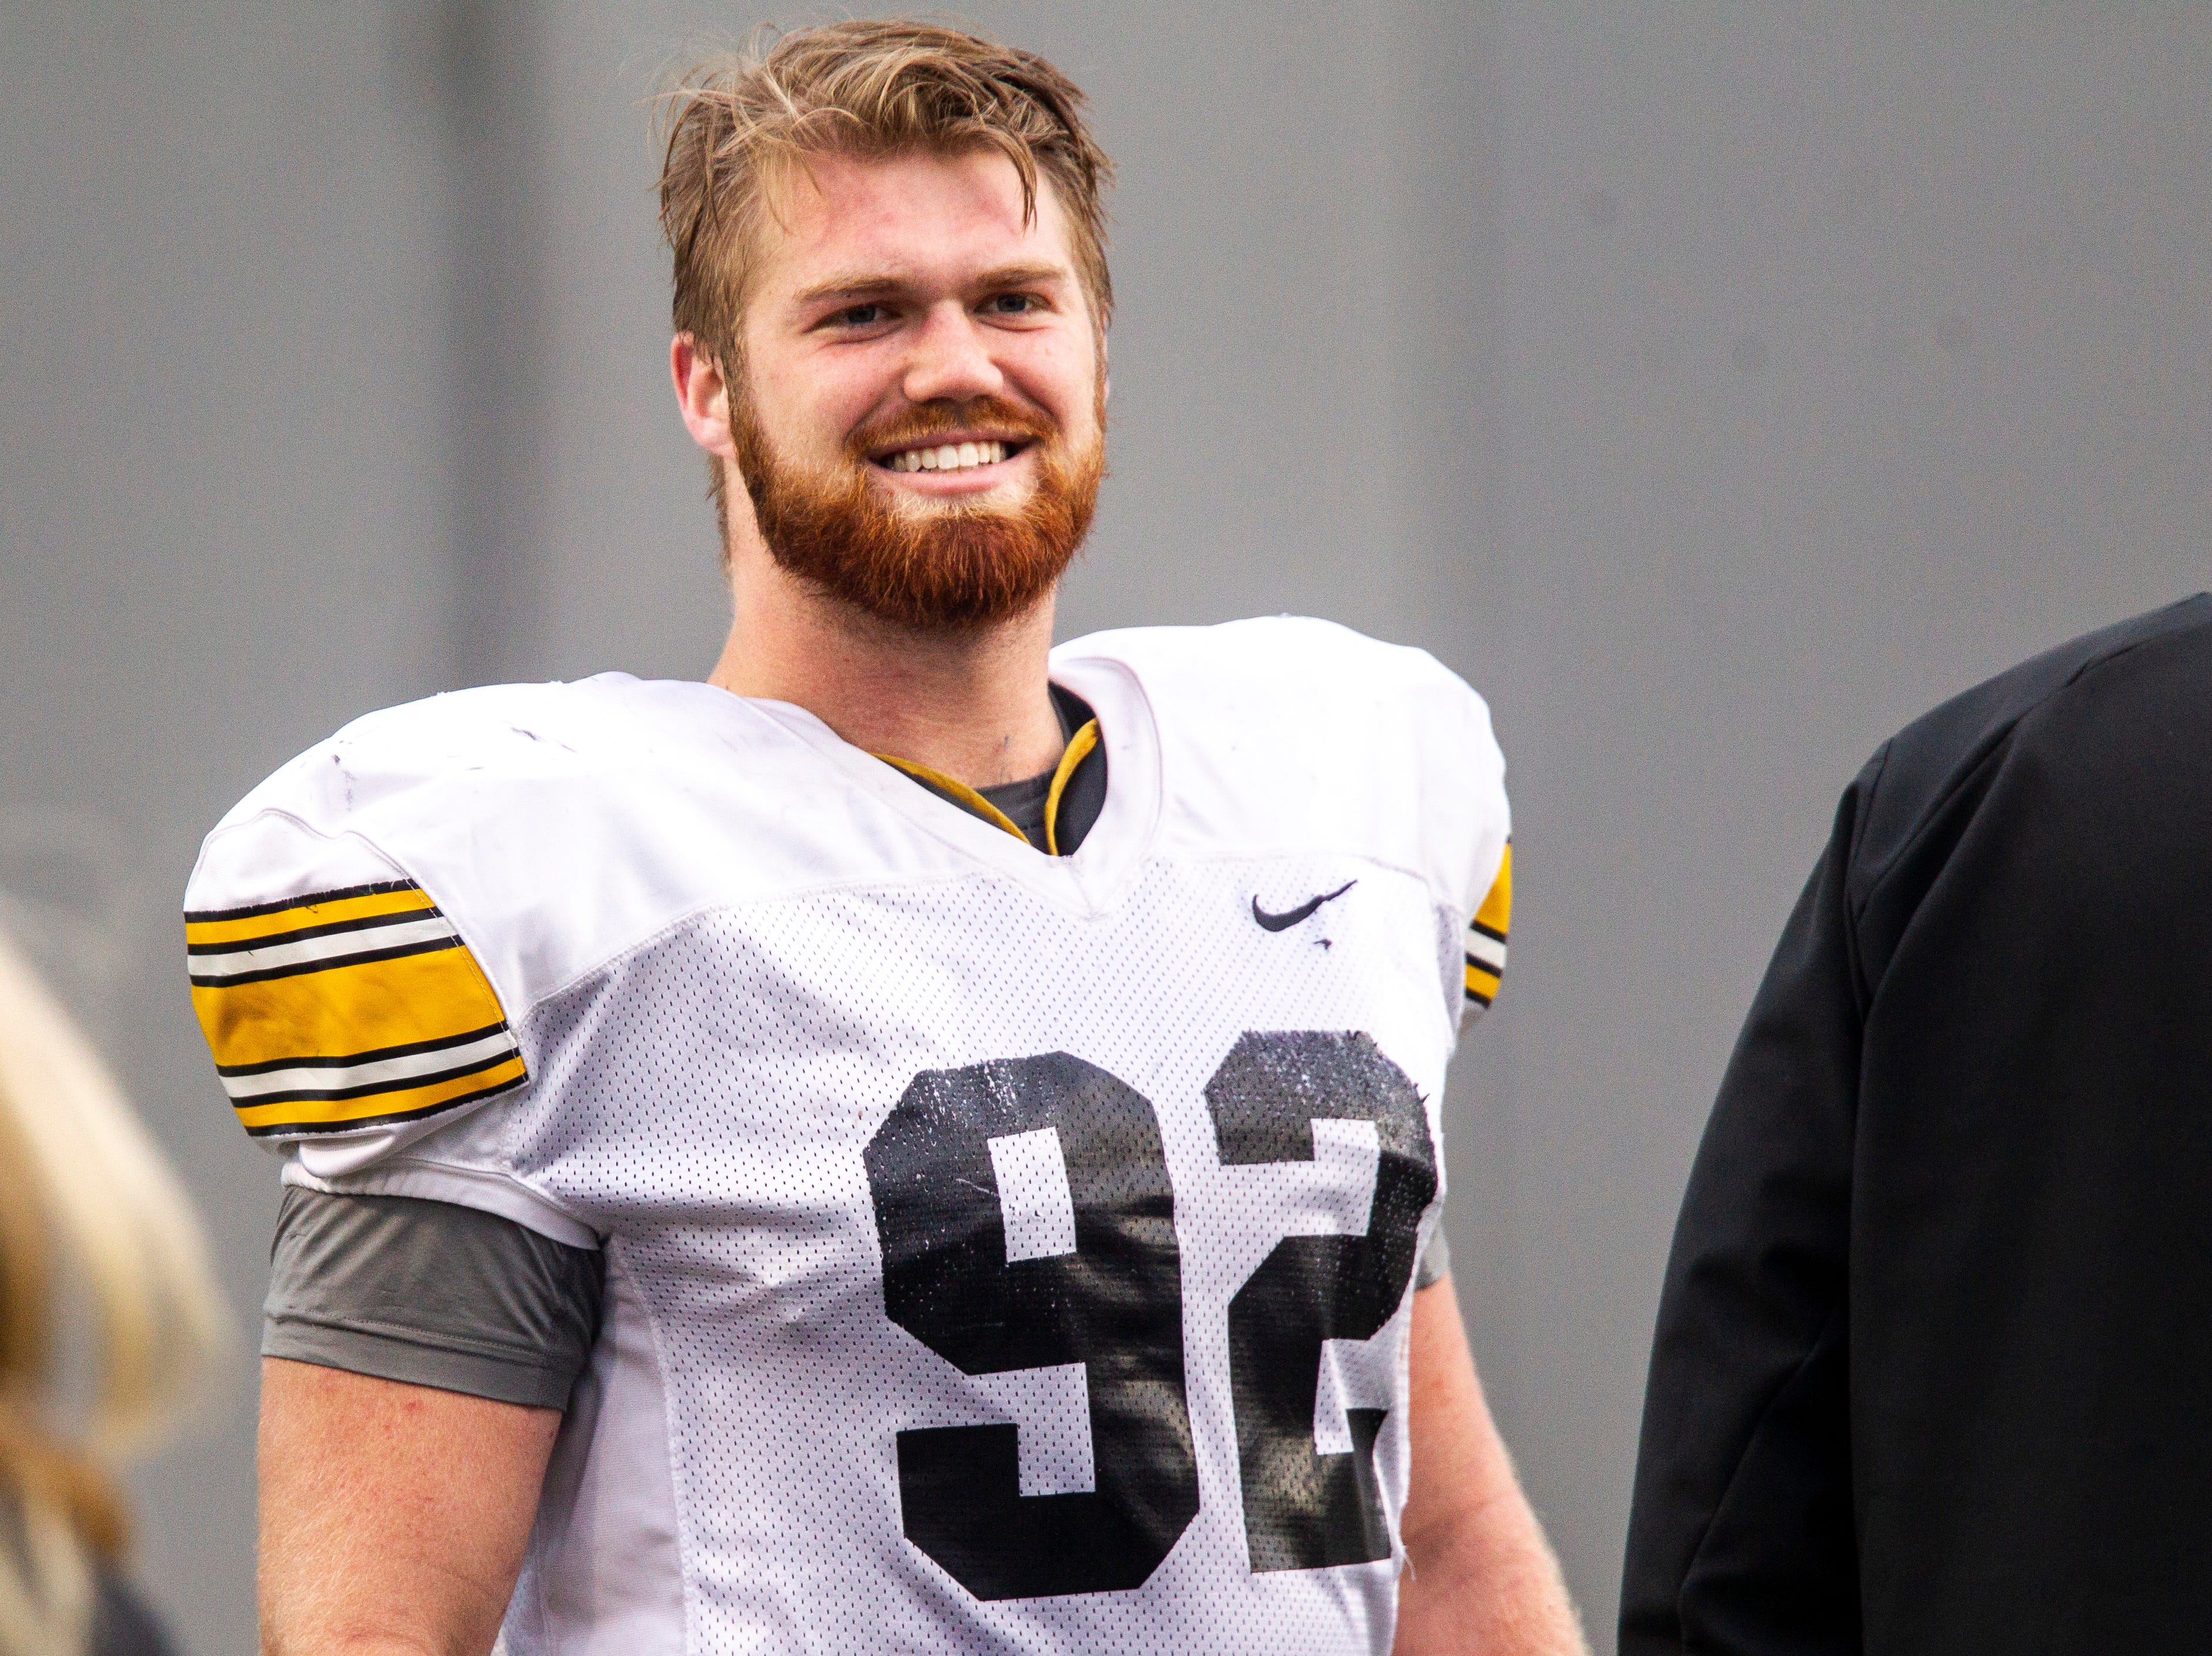 Iowa defensive lineman John Waggoner (92) is pictured during the final spring football practice, Friday, April 26, 2019, at the University of Iowa outdoor practice facility in Iowa City, Iowa.